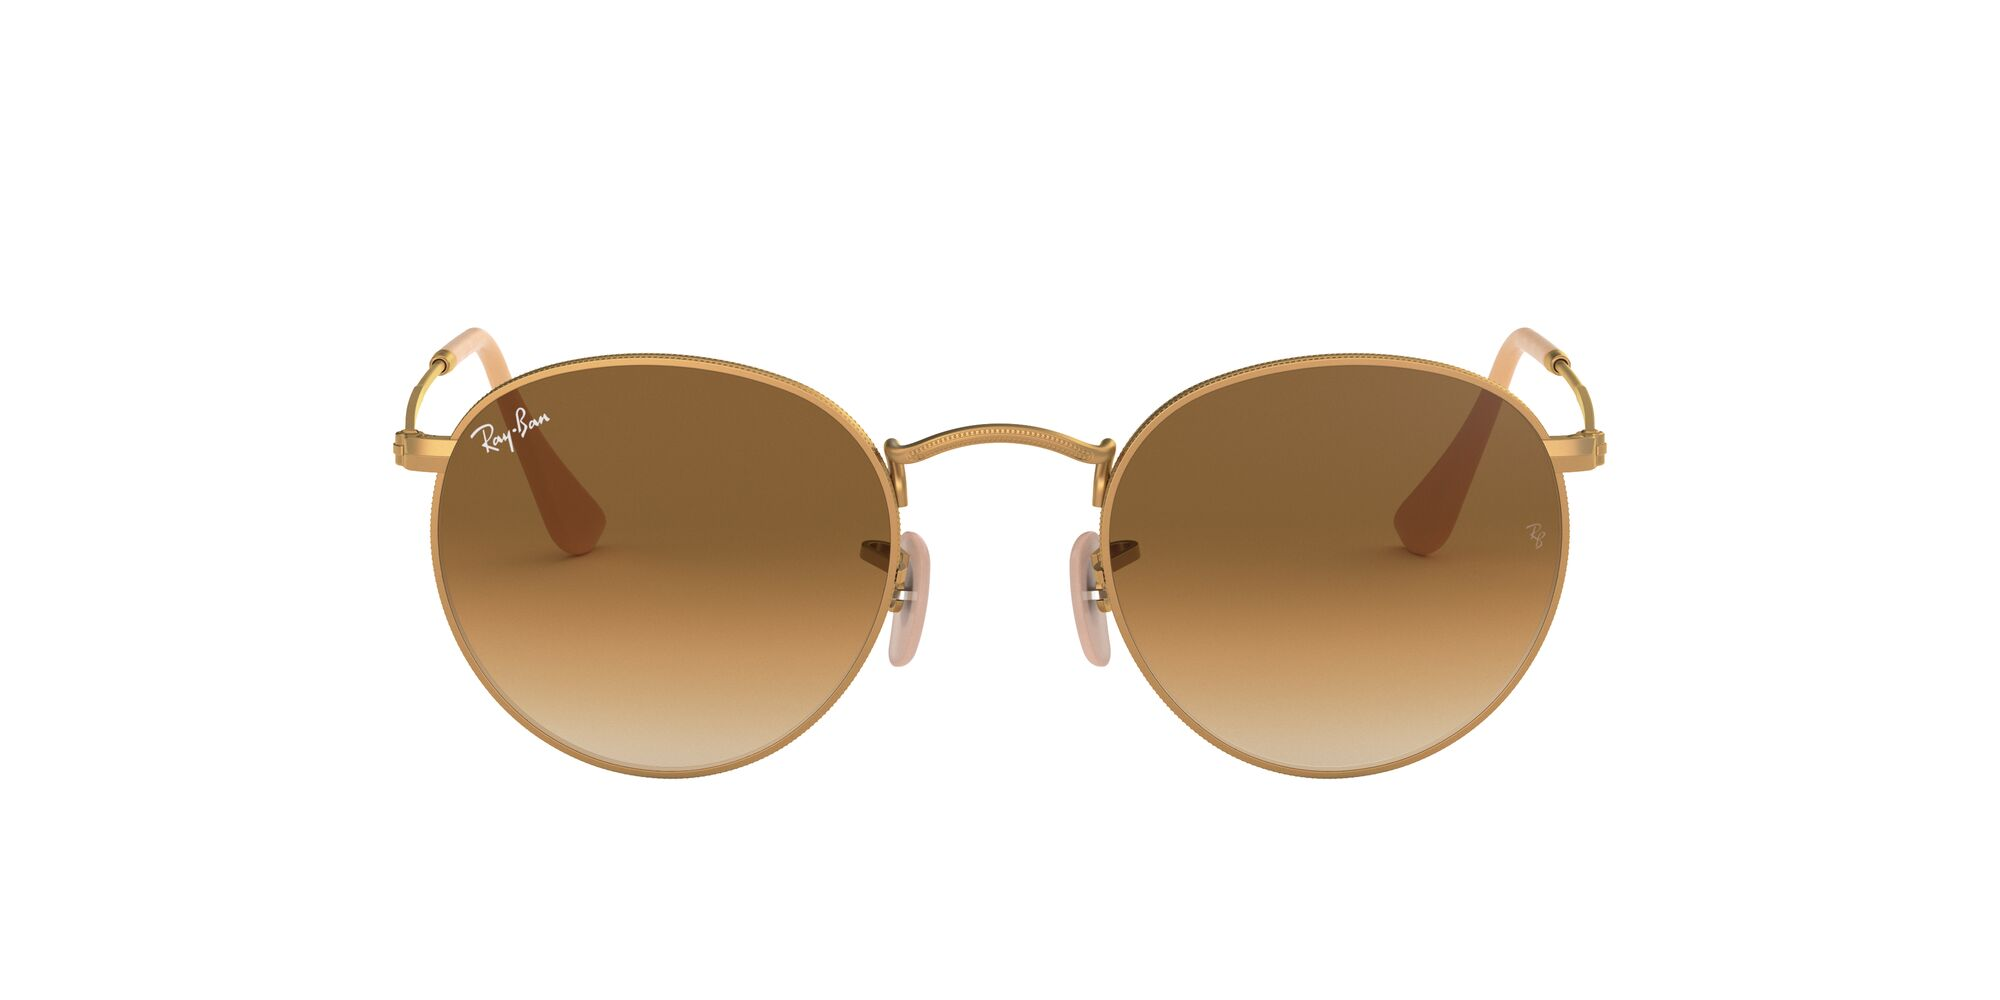 Front Ray-Ban Ray-Ban 0RB3447 112/51 50/21 Goud/Bruin